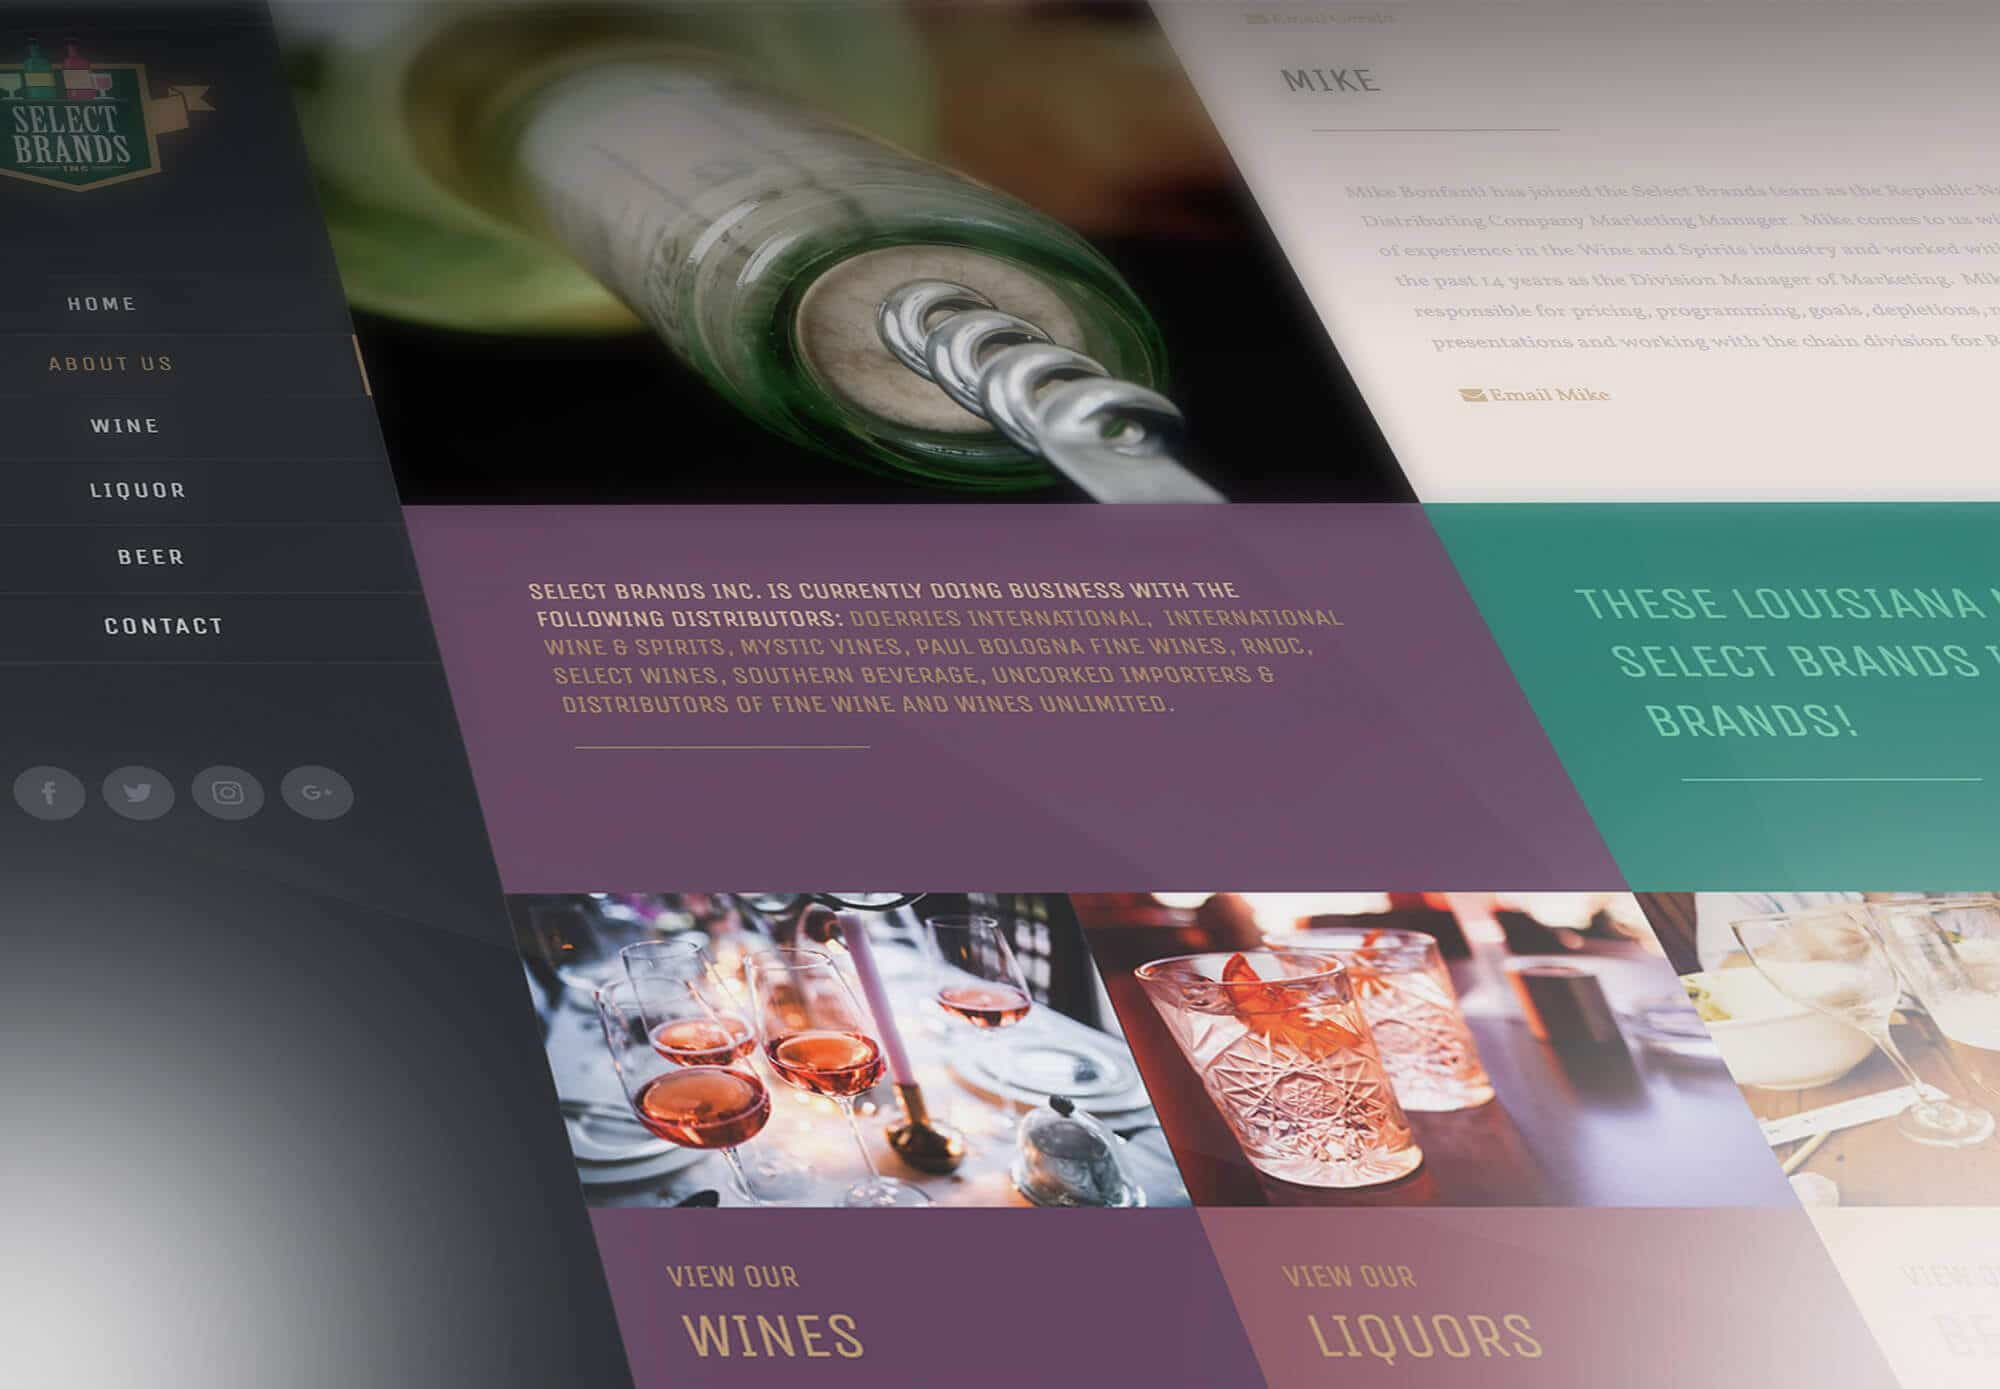 Website Design Services for Select Brands, Inc. about us page